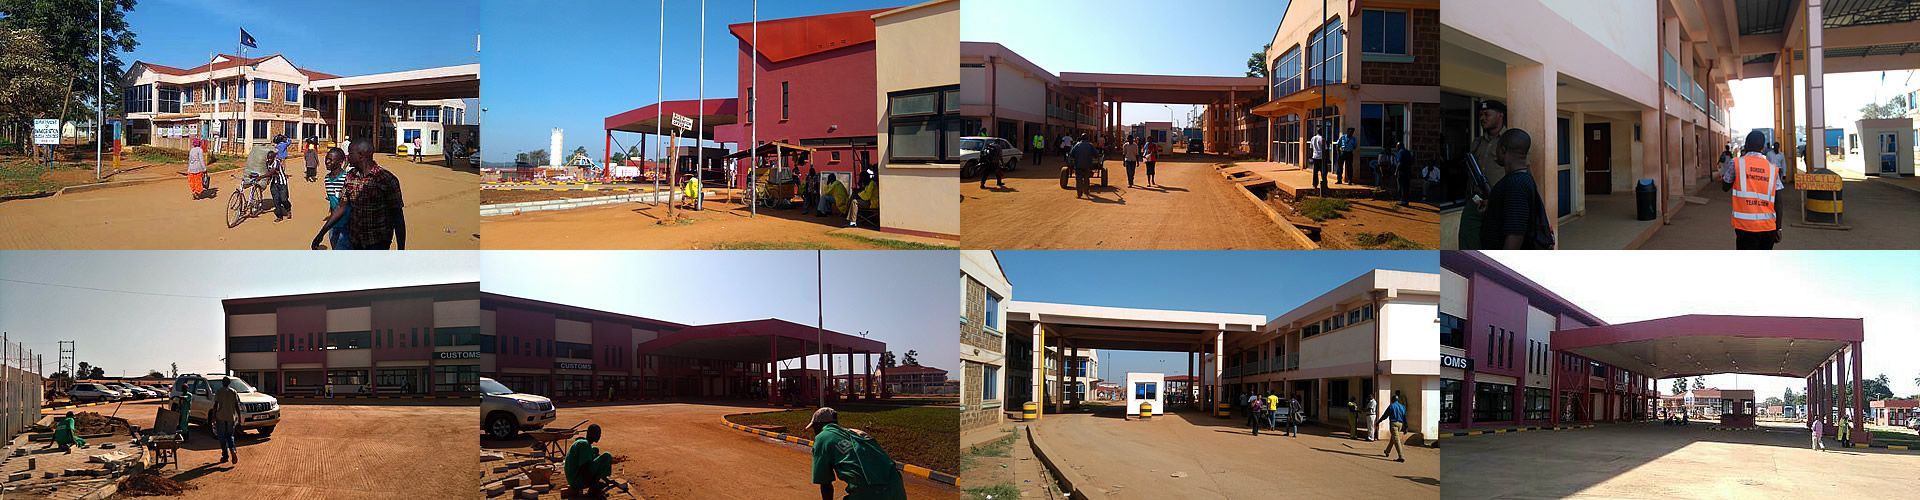 Busia Border Post | Uganda / Kenya